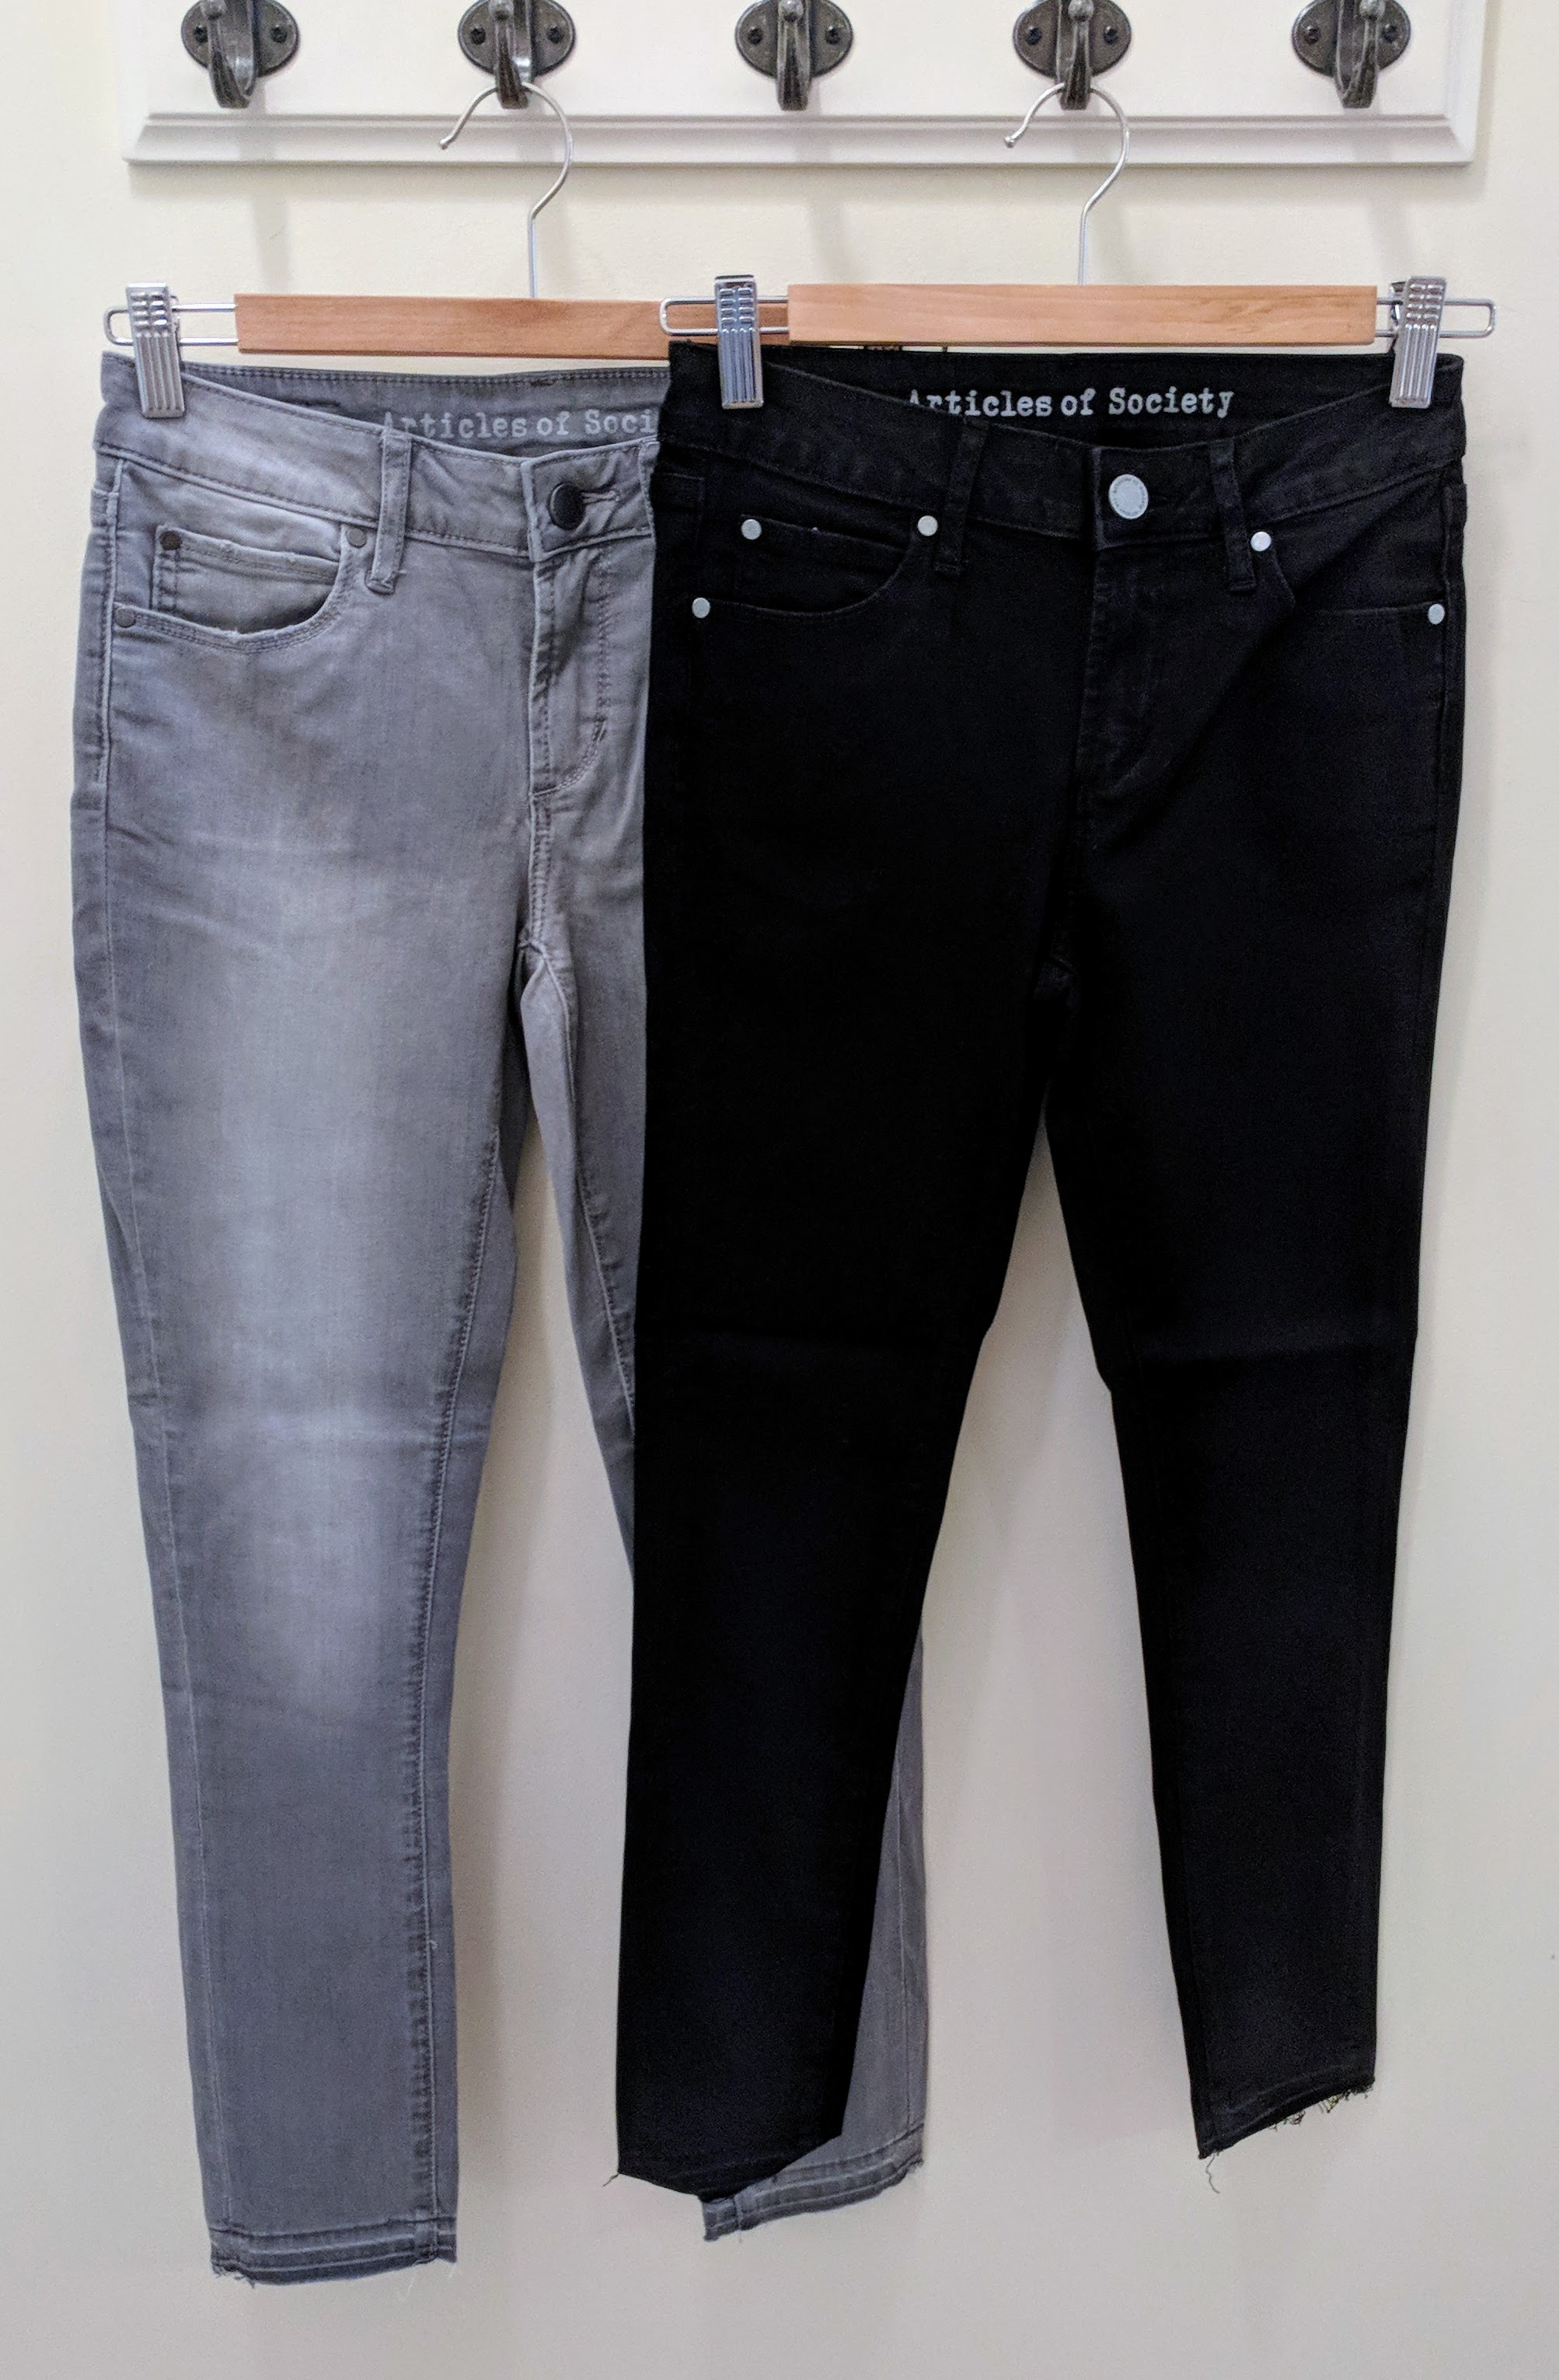 Articles of Society Super soft crop jeans